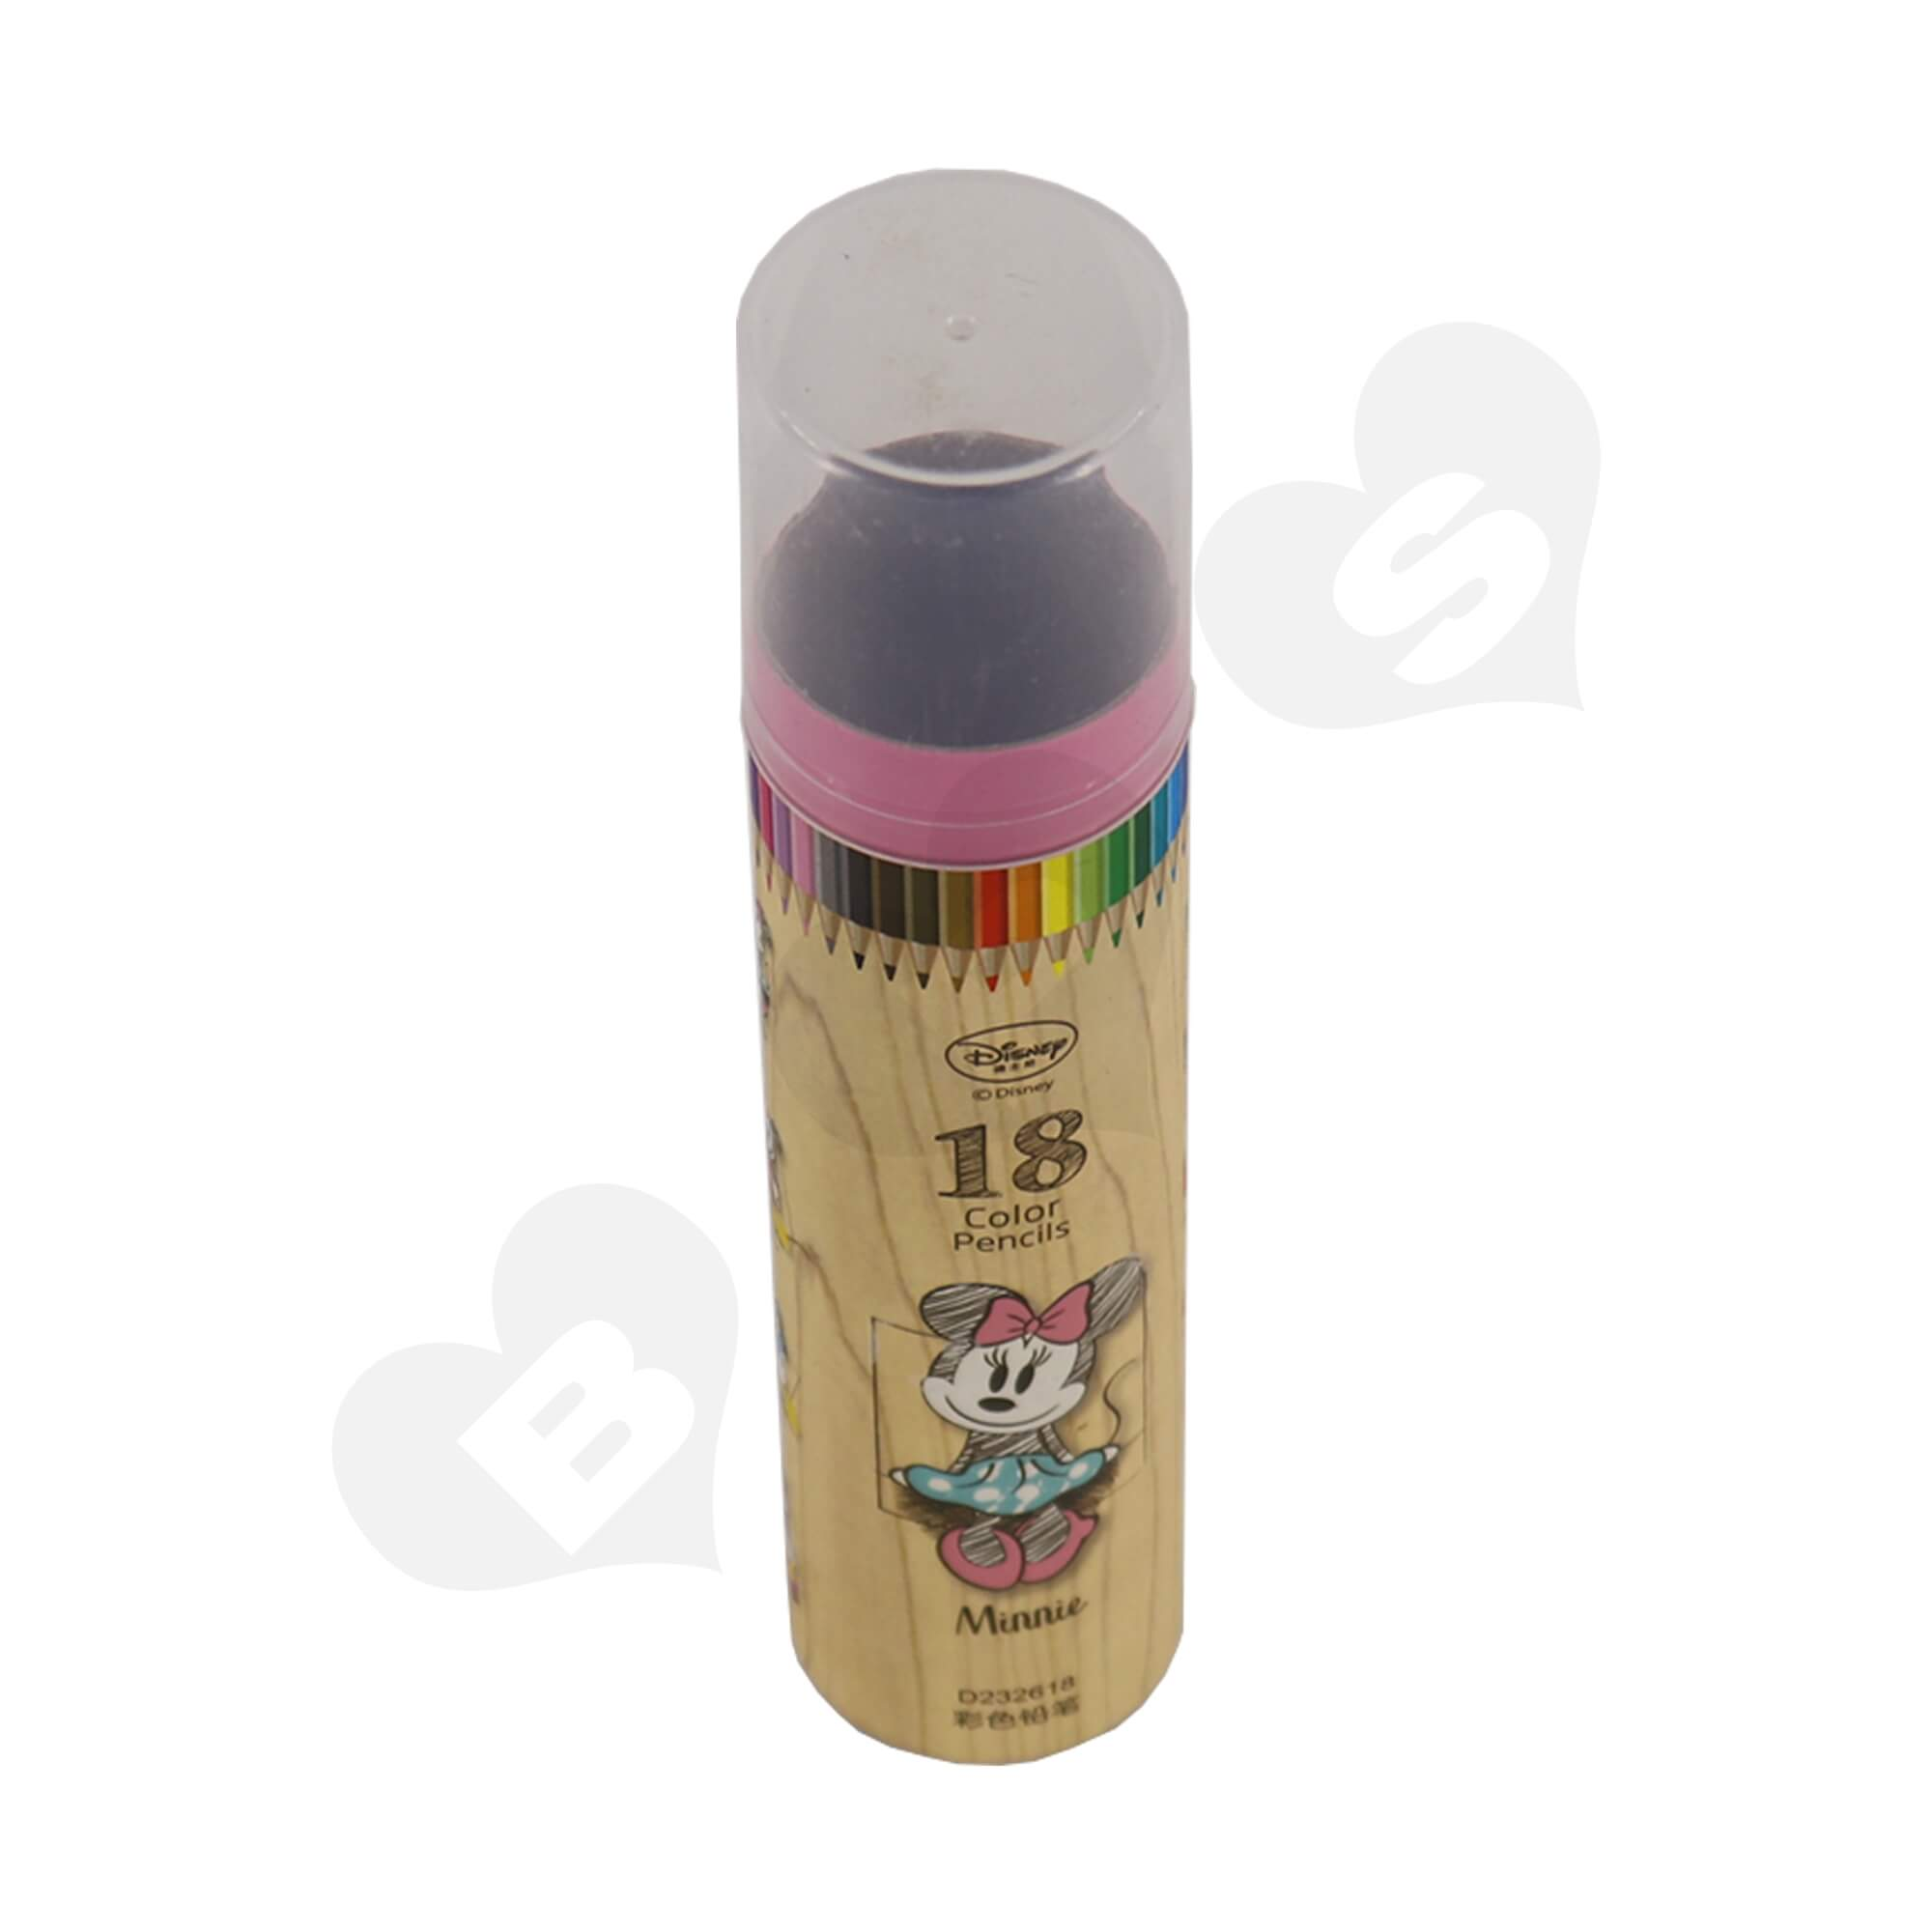 Branded Cardboard Cylinder With Plastic Lid For Packing Color Pencils Side View One